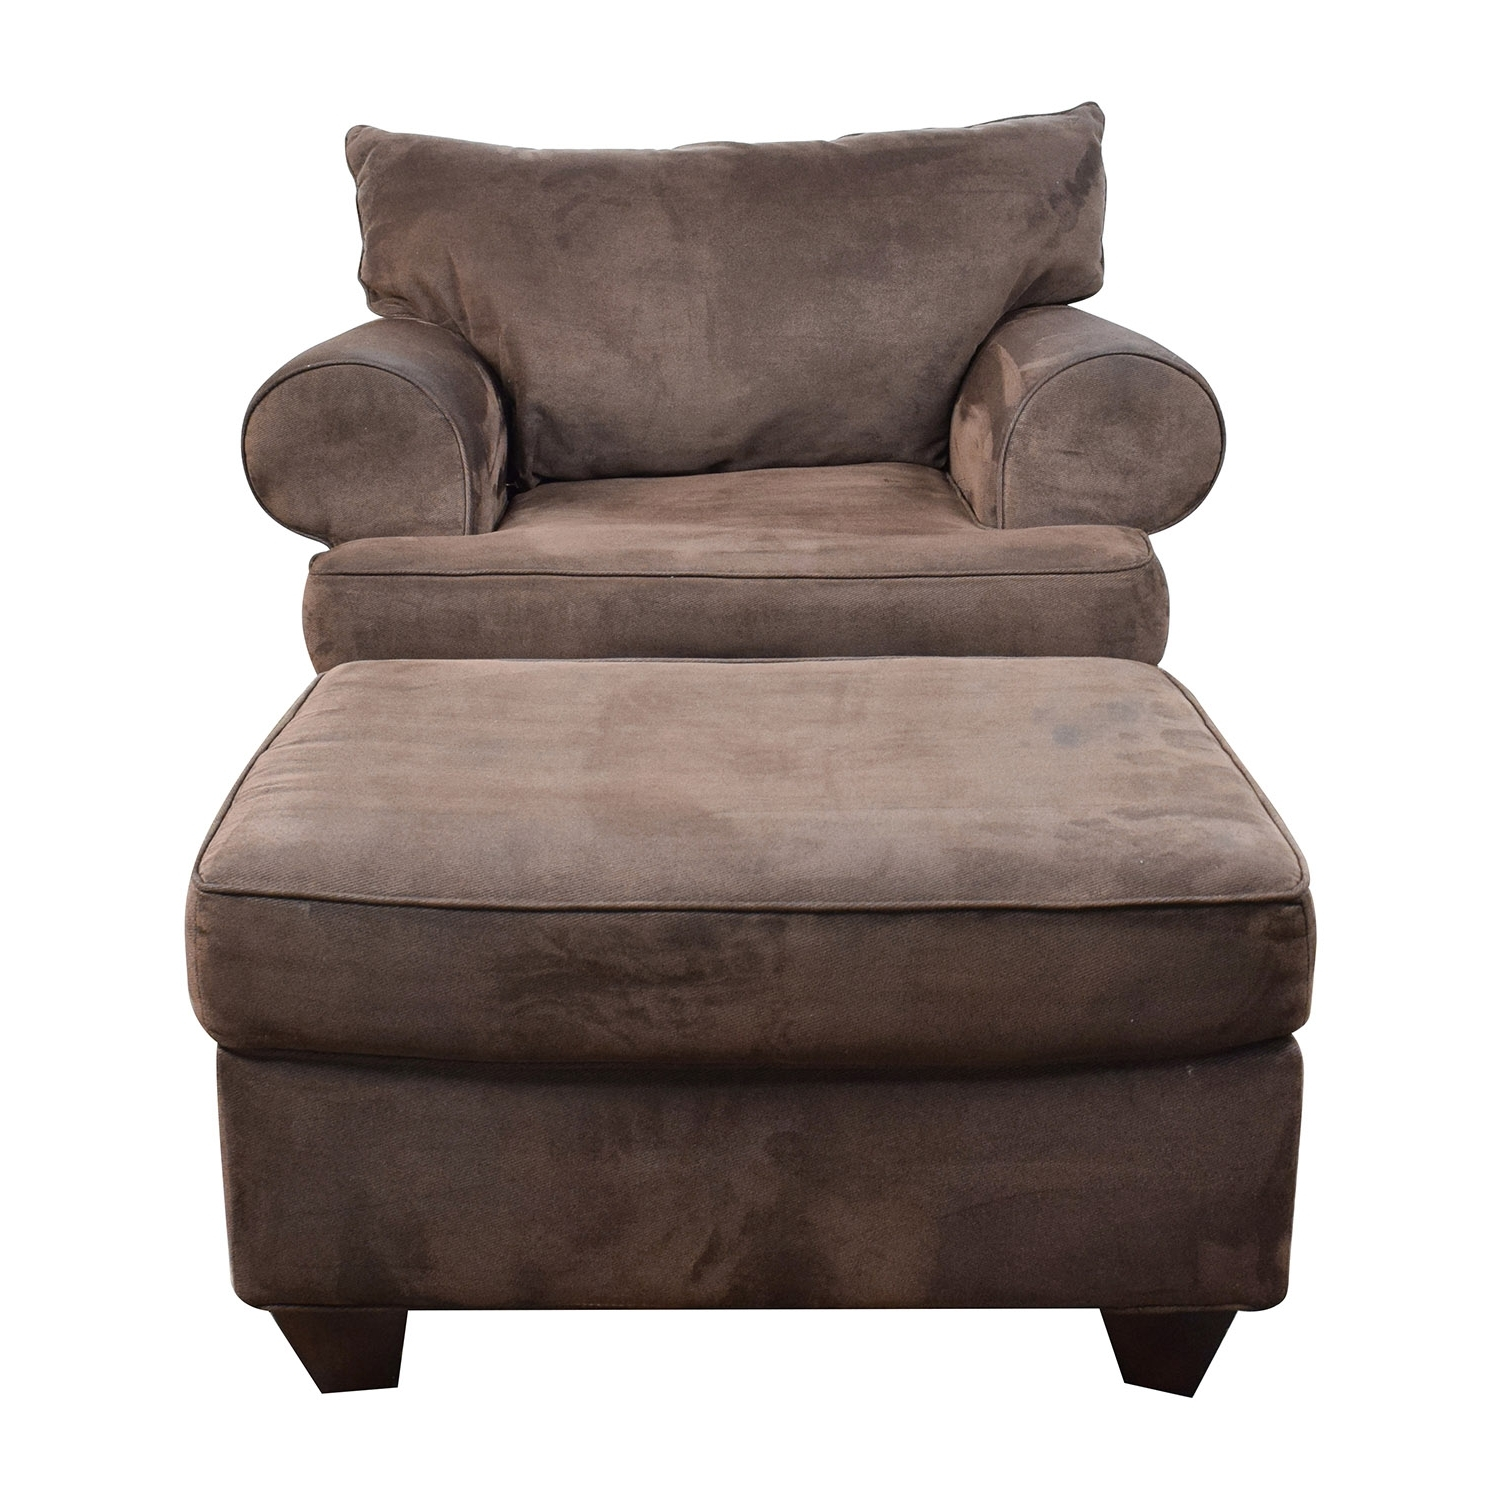 [%67% Off – Dark Brown Sofa Chair With Ottoman / Chairs With Famous Brown Sofa Chairs|Brown Sofa Chairs Within Fashionable 67% Off – Dark Brown Sofa Chair With Ottoman / Chairs|Trendy Brown Sofa Chairs Intended For 67% Off – Dark Brown Sofa Chair With Ottoman / Chairs|Newest 67% Off – Dark Brown Sofa Chair With Ottoman / Chairs Within Brown Sofa Chairs%] (View 4 of 15)